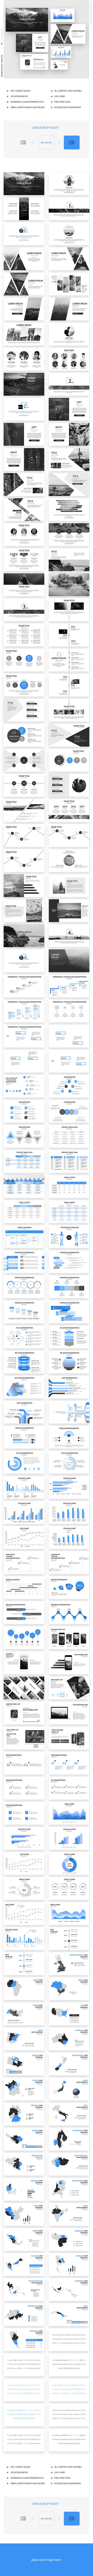 Blue steel business strategy powerpoint template 180 unique blue steel business strategy powerpoint template 180 unique slides cheaphphosting Images